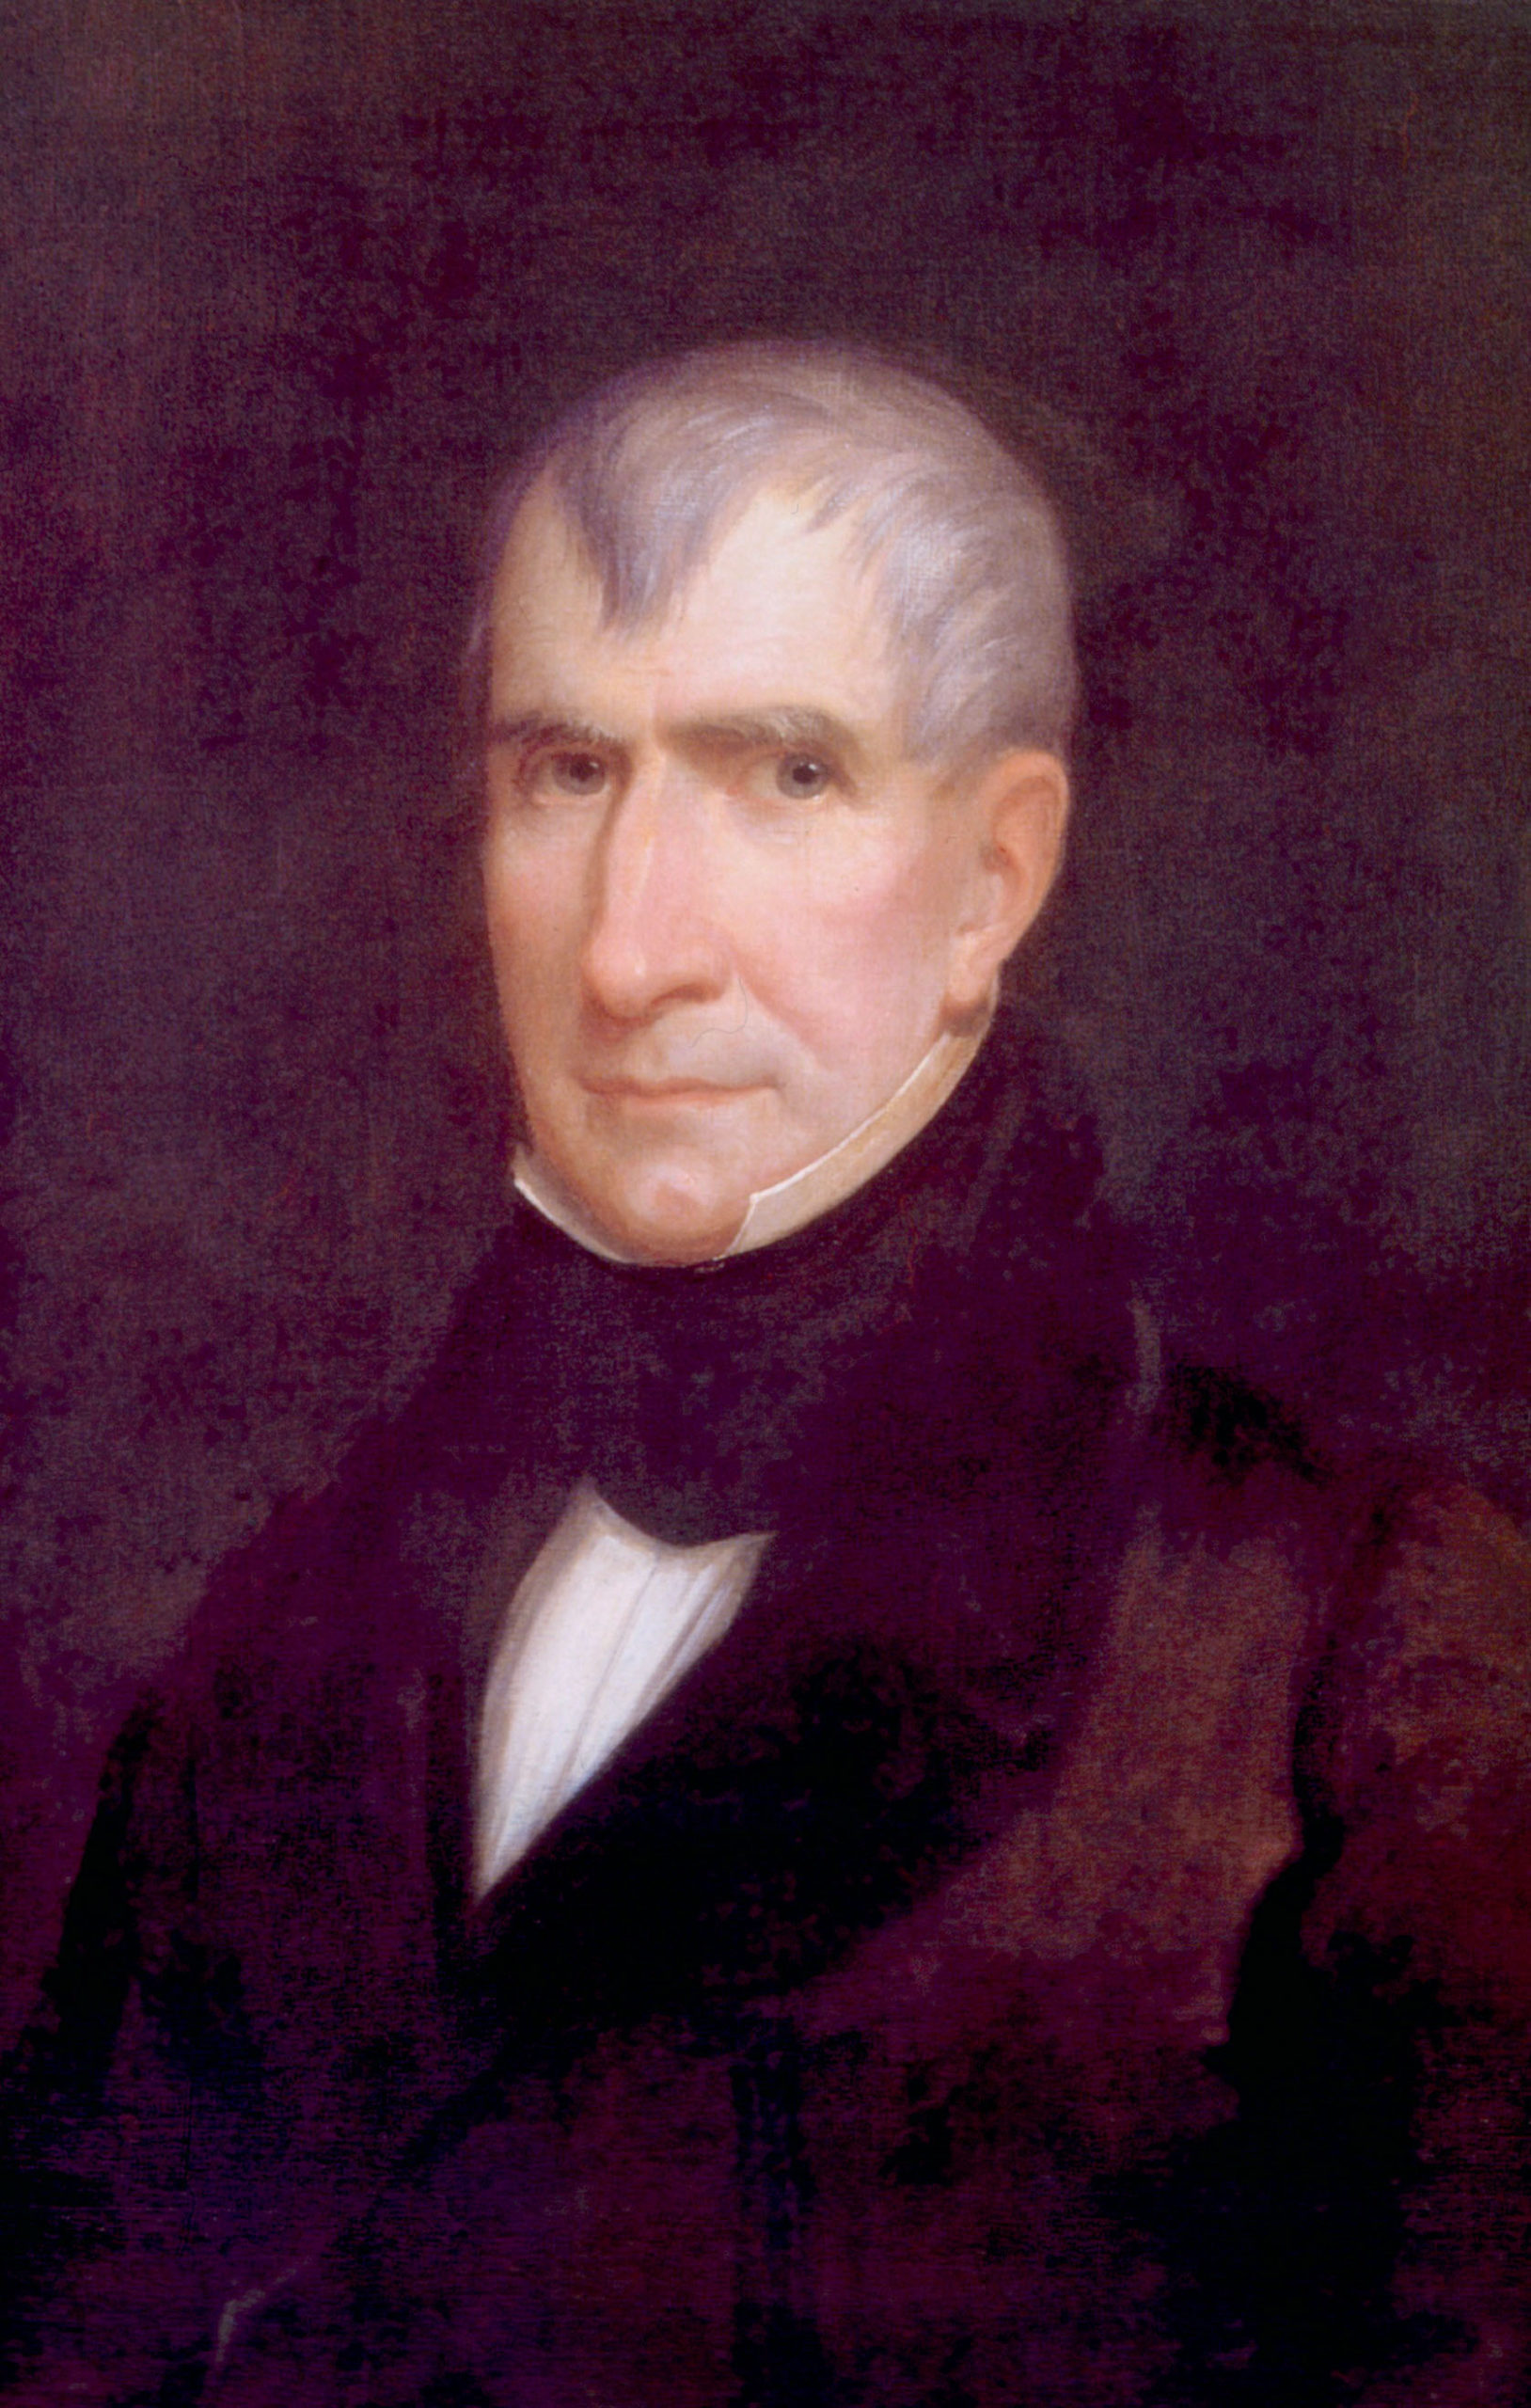 The 9th President of the United States.  He is best known for dying of either typhoid, pneumonia, or paratyphoid fever 31 days into his term, becoming the first president to die in office and the shortest-serving president in U.S. history.